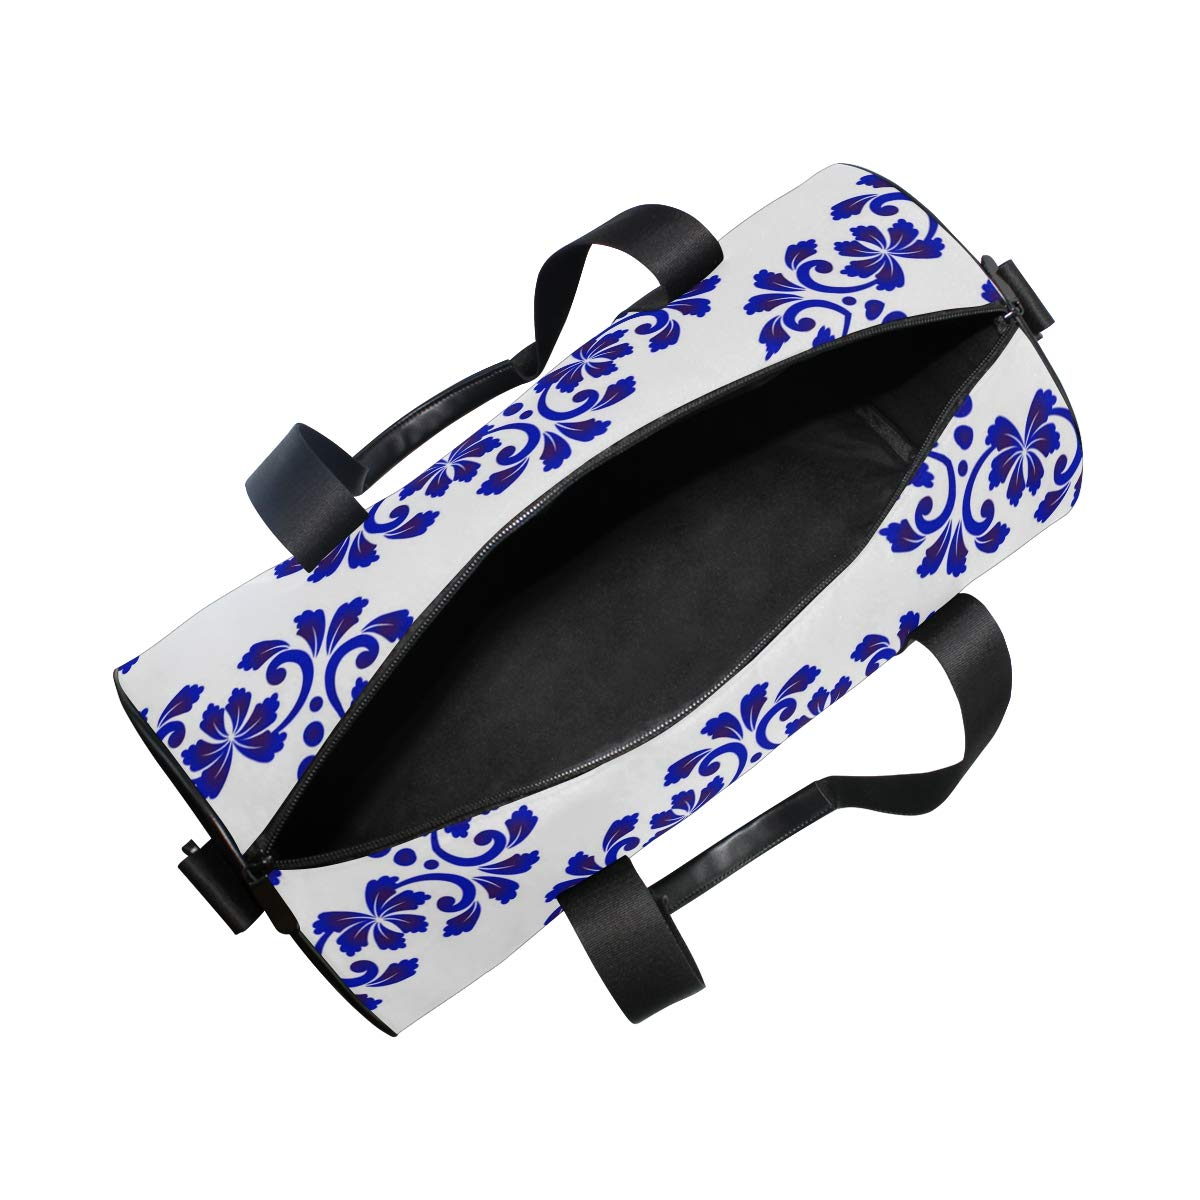 Cold Ceramic PictureWaterproof Non-Slip Wearable Crossbody Bag fitness bag Shoulder Bag